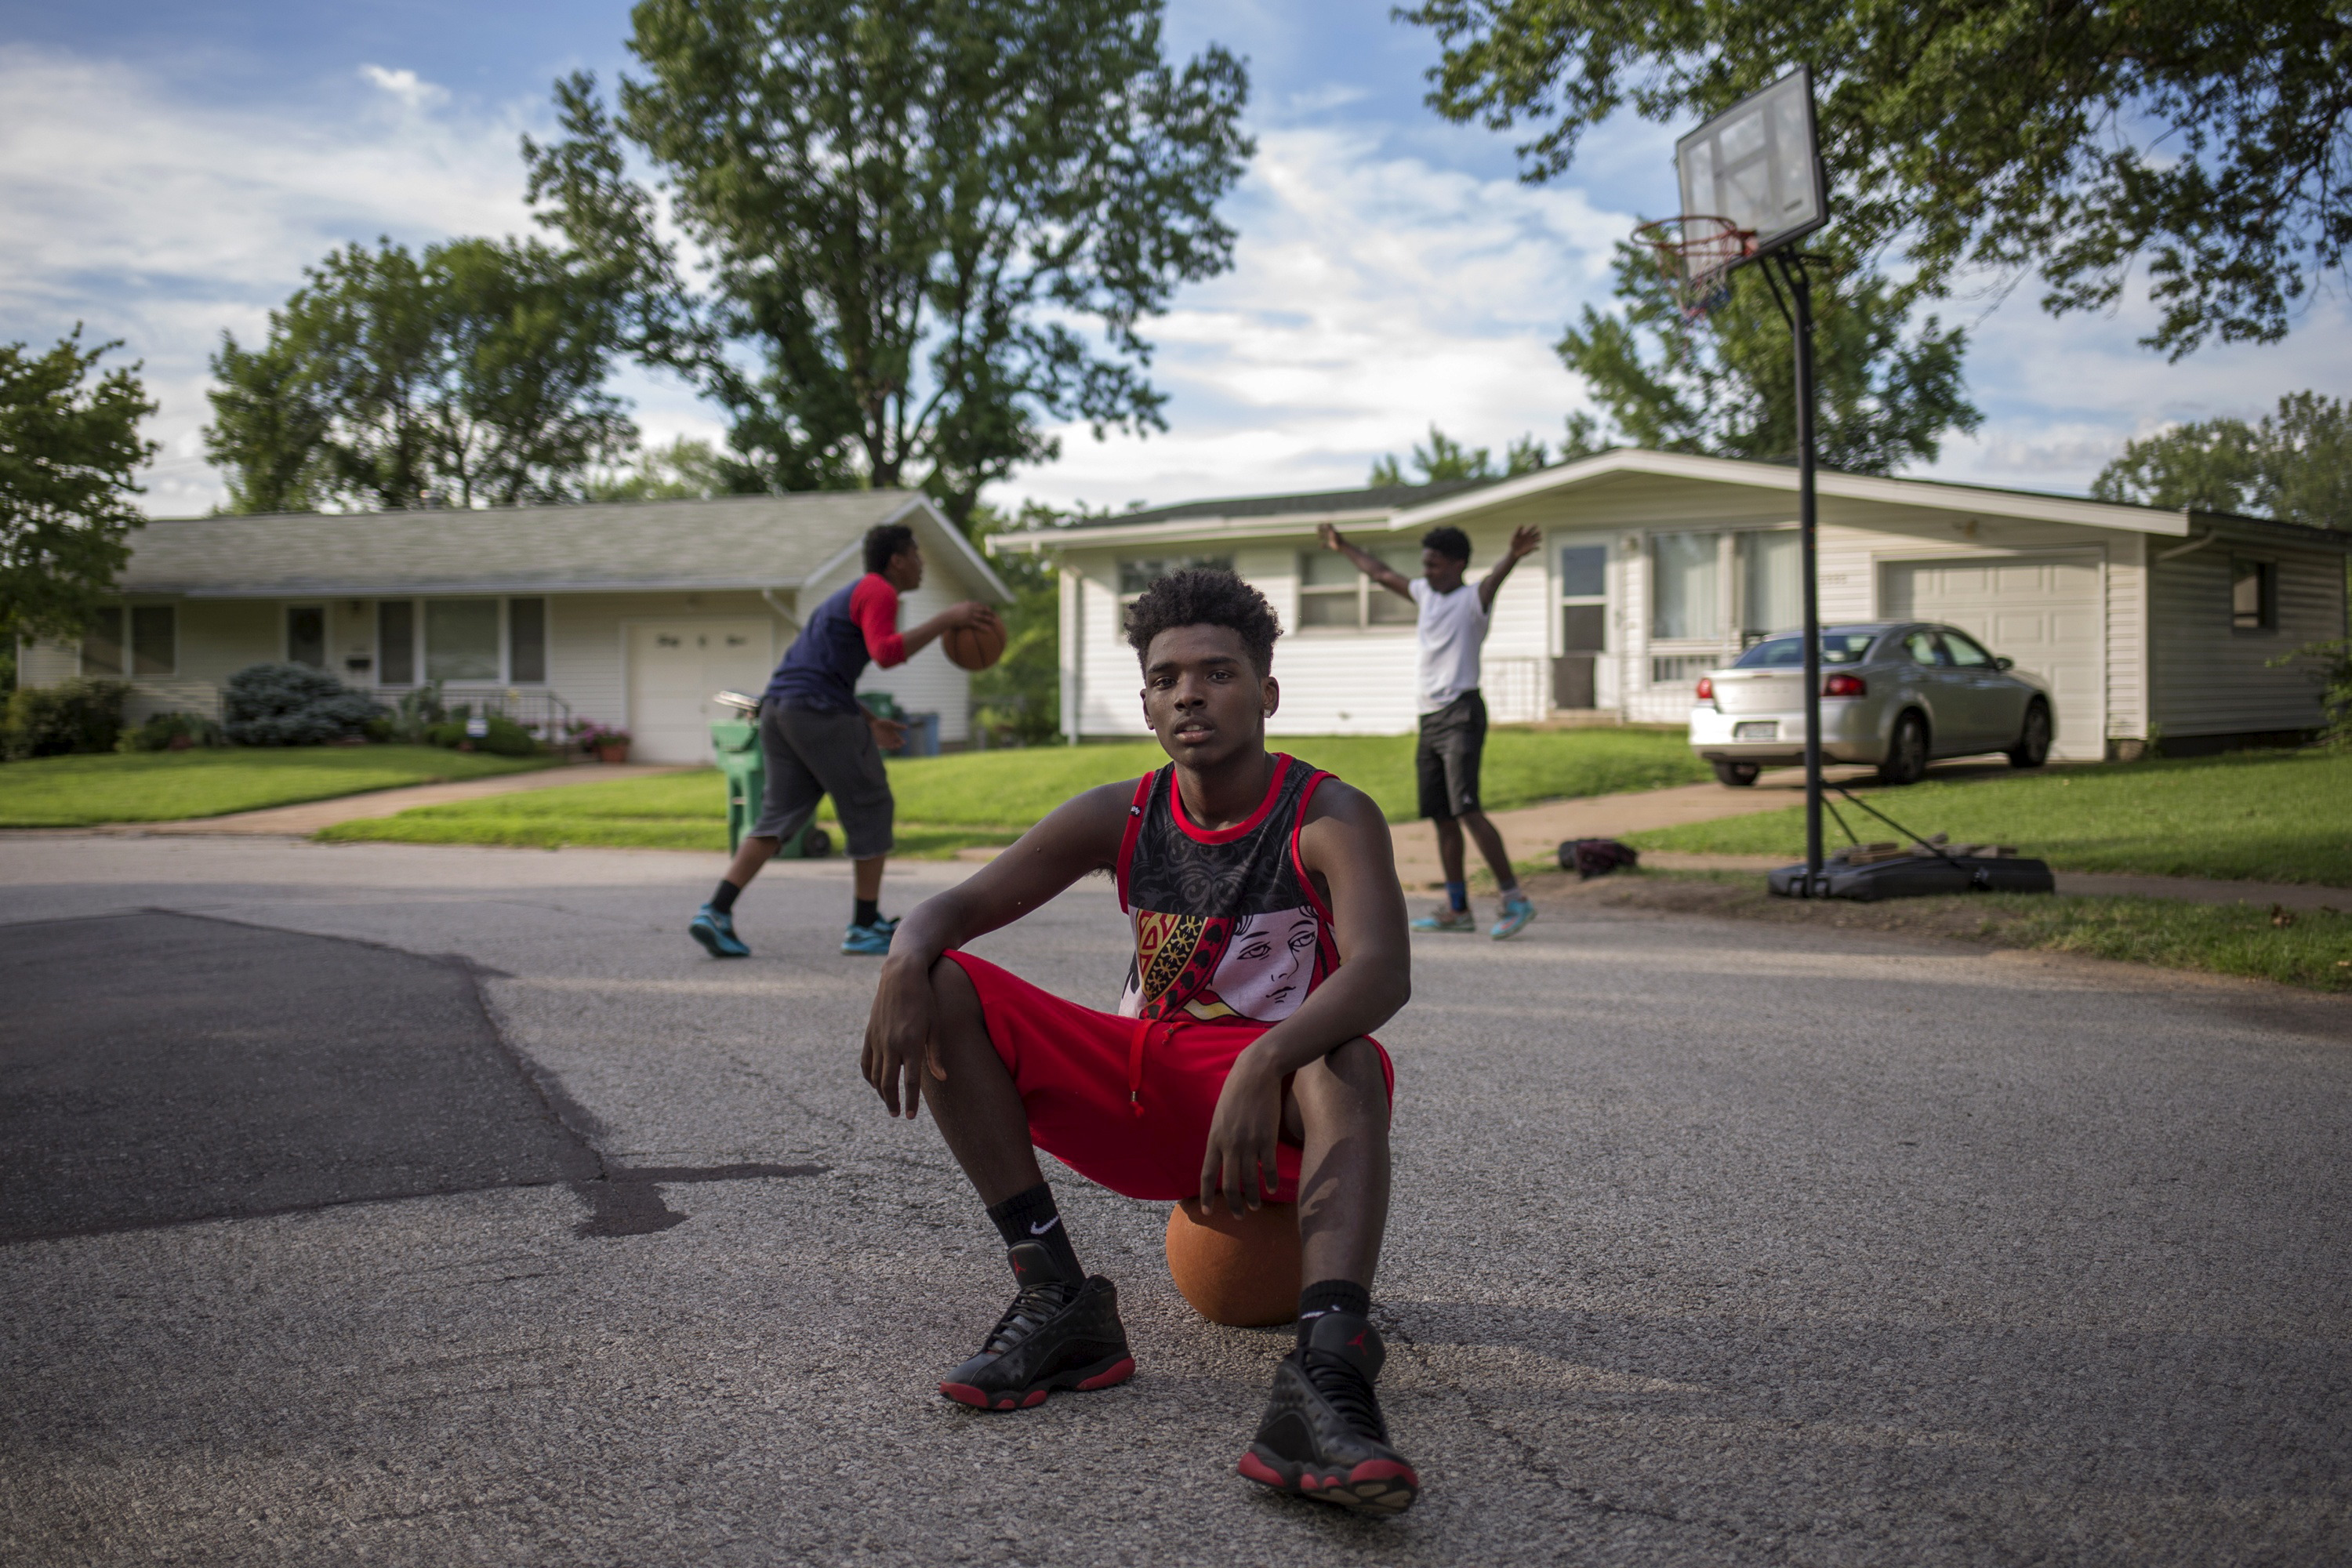 """Randy Johnson, 17, a high school student, poses for a portrait between games of basketball outside a friend's residence in Ferguson, Missouri July 21, 2015. When asked how Michael Brown's death affected him, Johnson said, """"I don't trust the law anymore. I could be next."""" When asked what changes he has seen in his community over the past year, Johnson said, """"The police don't come around no more. They don't want an incident like that."""" On August 9, 2014 a white police officer shot unarmed black teenager Michael Brown dead in the St. Louis suburb of Ferguson, Missouri."""